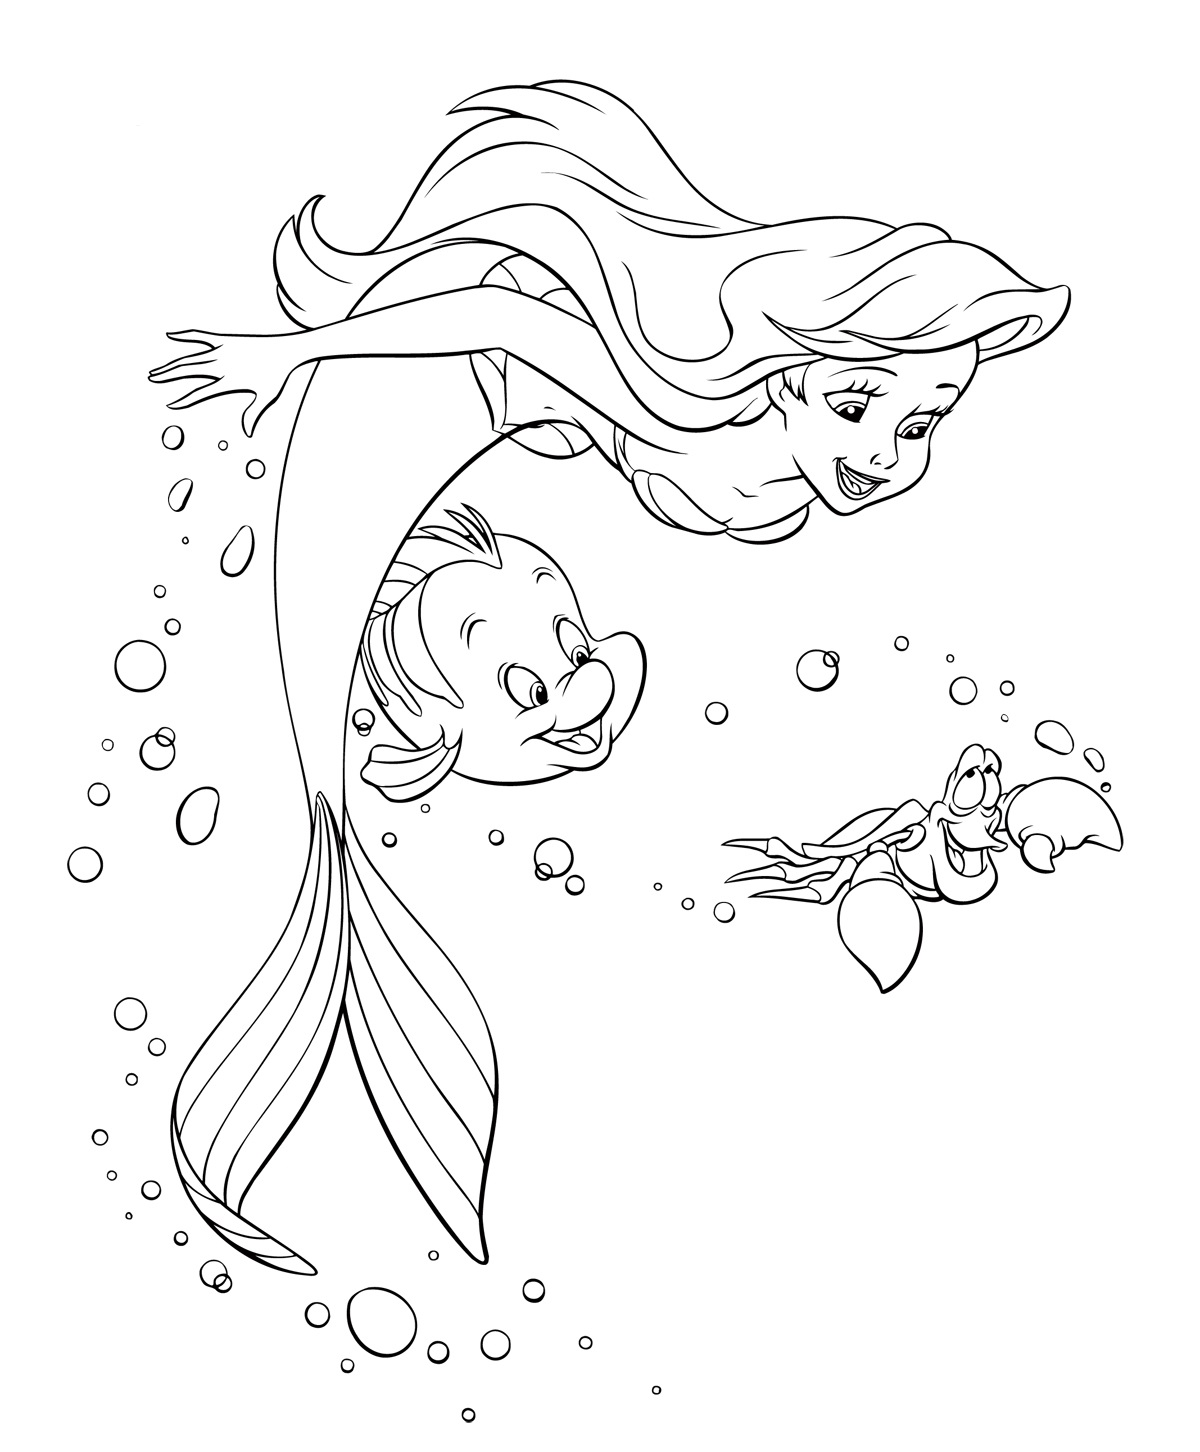 coloring little mermaid the little mermaid coloring pages download and print the little coloring mermaid